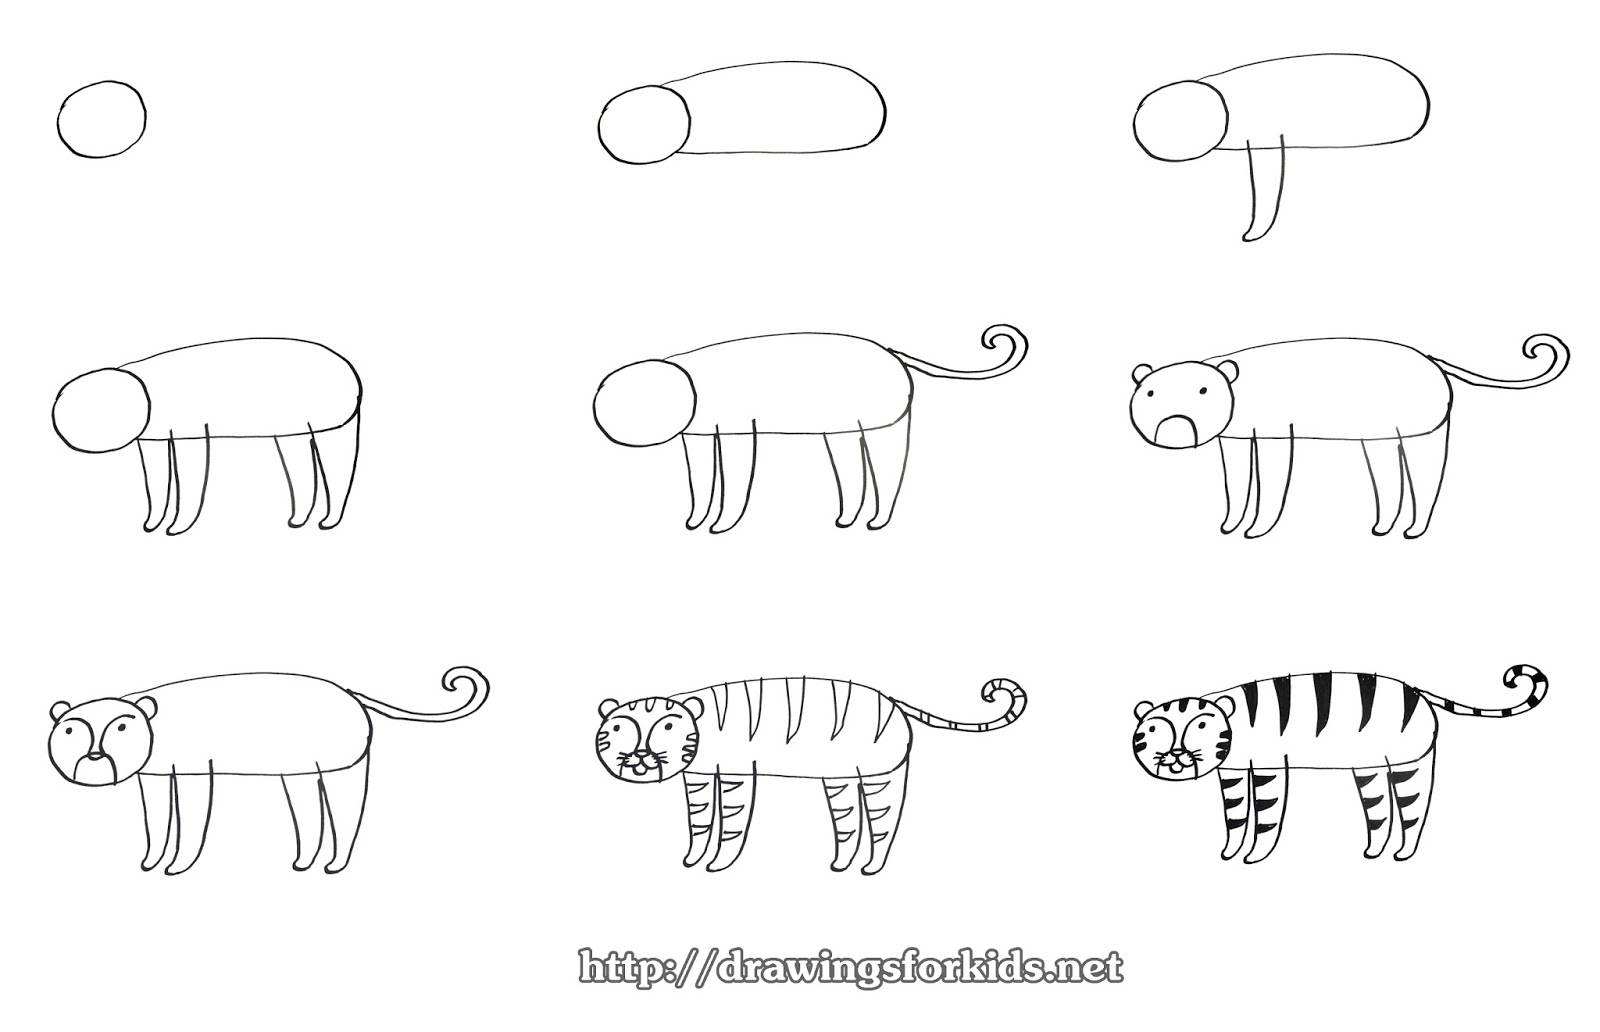 How To Draw A Tiger For Kids Drawingsforkids Net